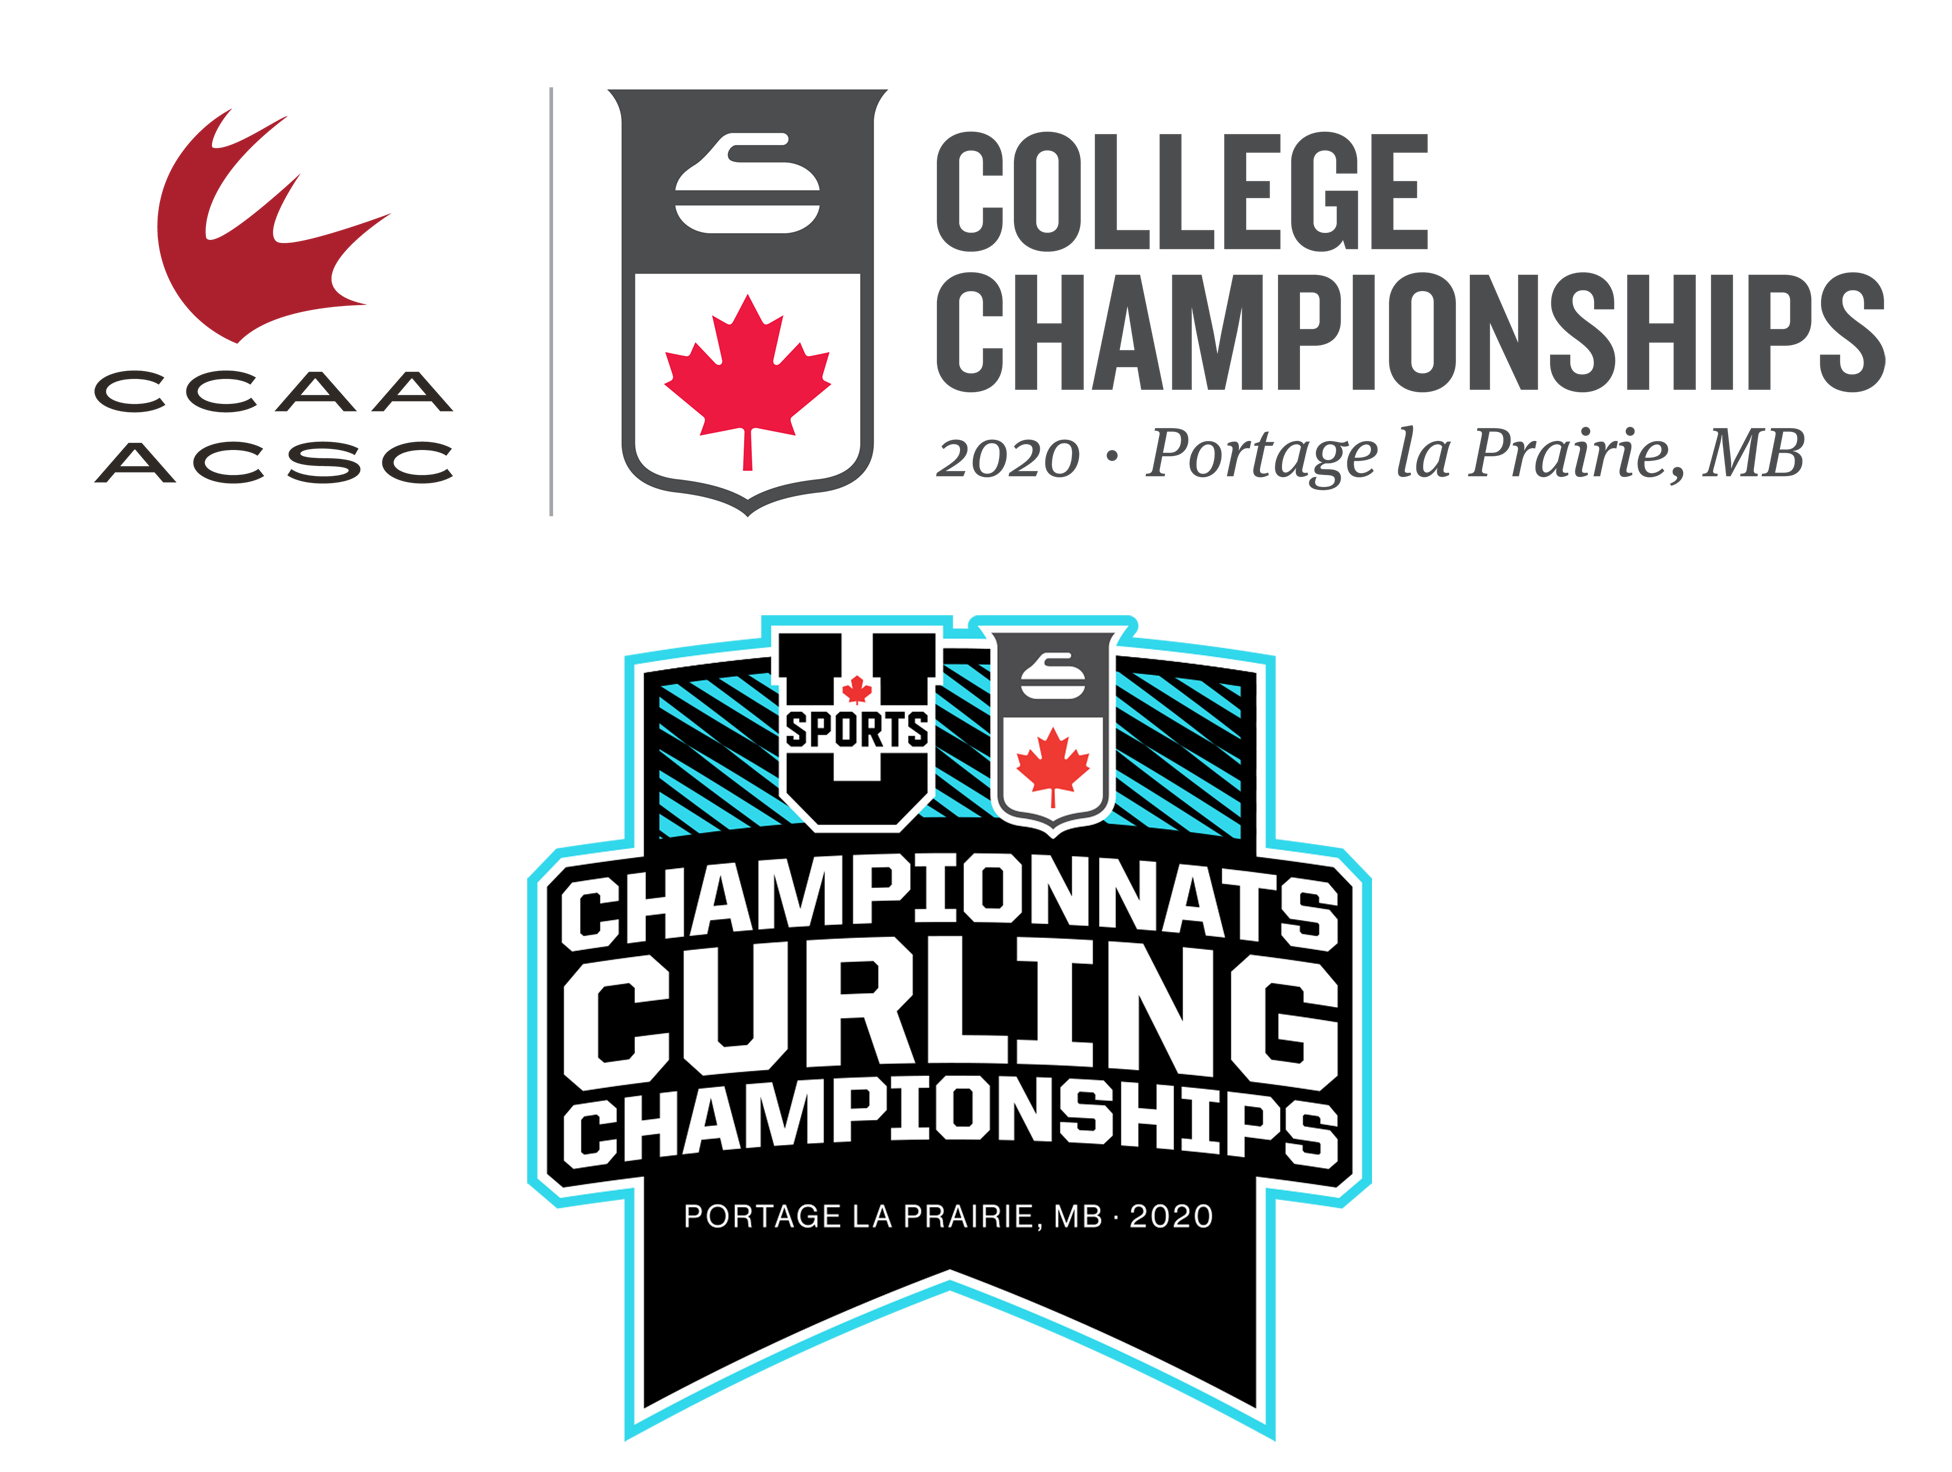 2020 U SPORTS and CCAA CURLING CHAMPIONSHIPS